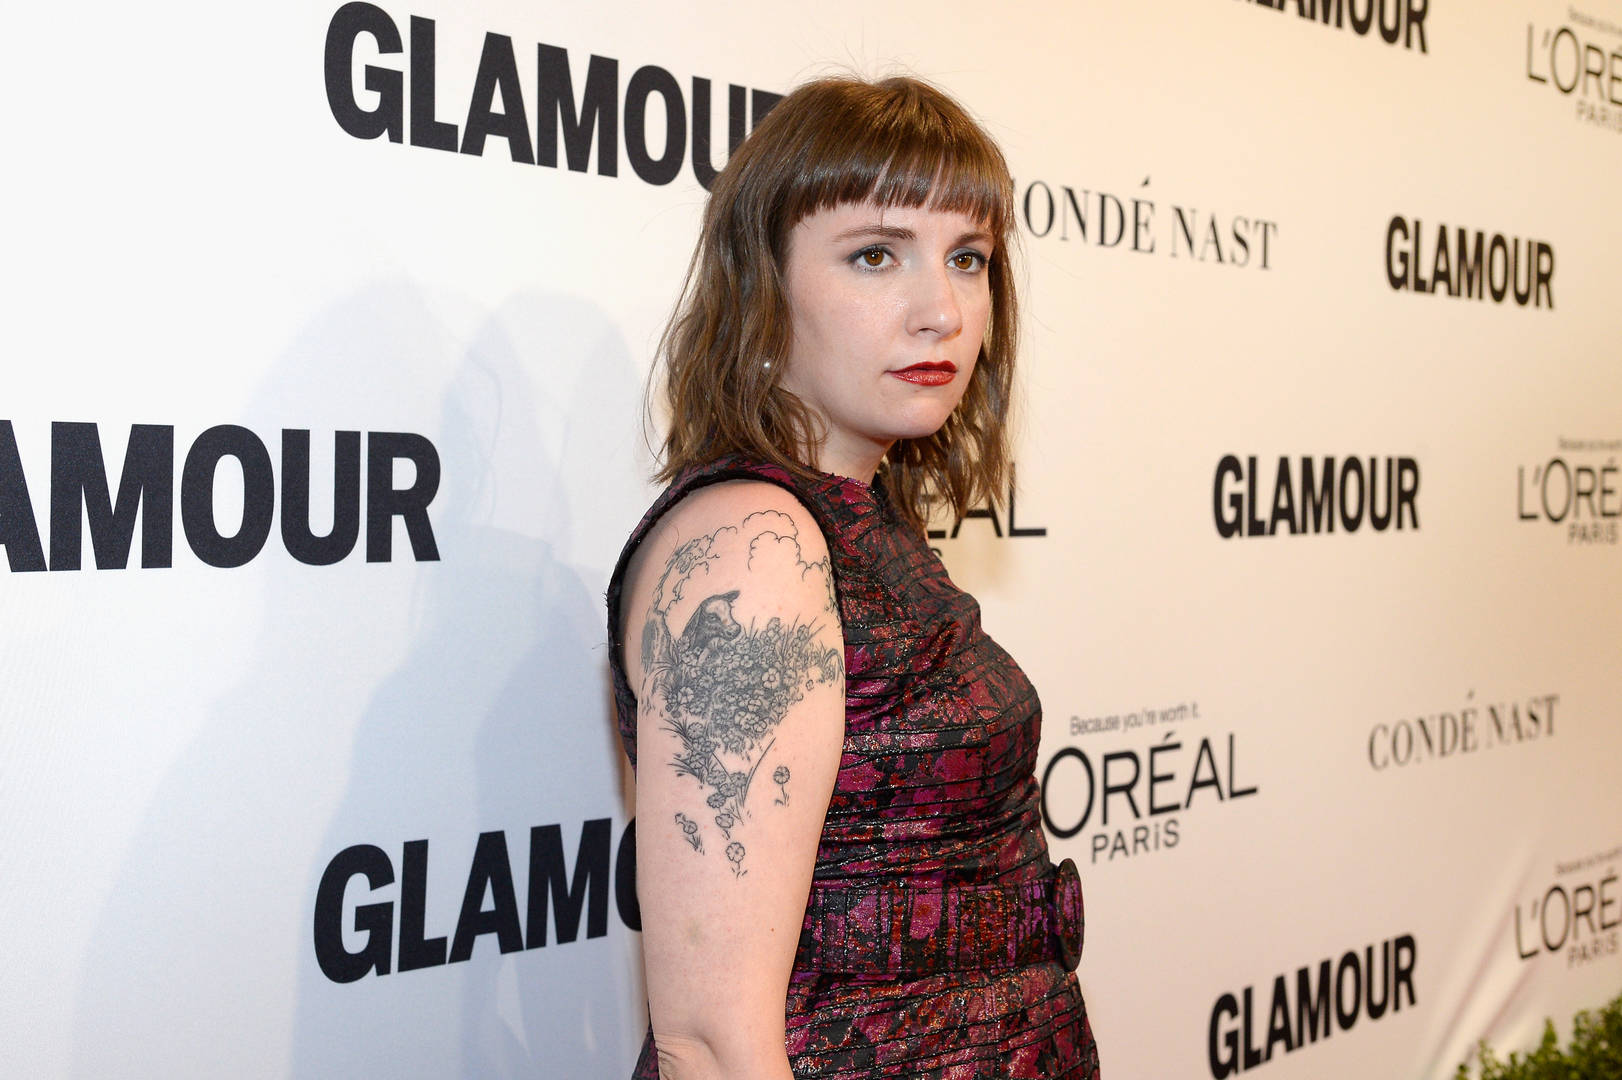 Lena Dunham Speaks About Addiction During Friendly House Benefit